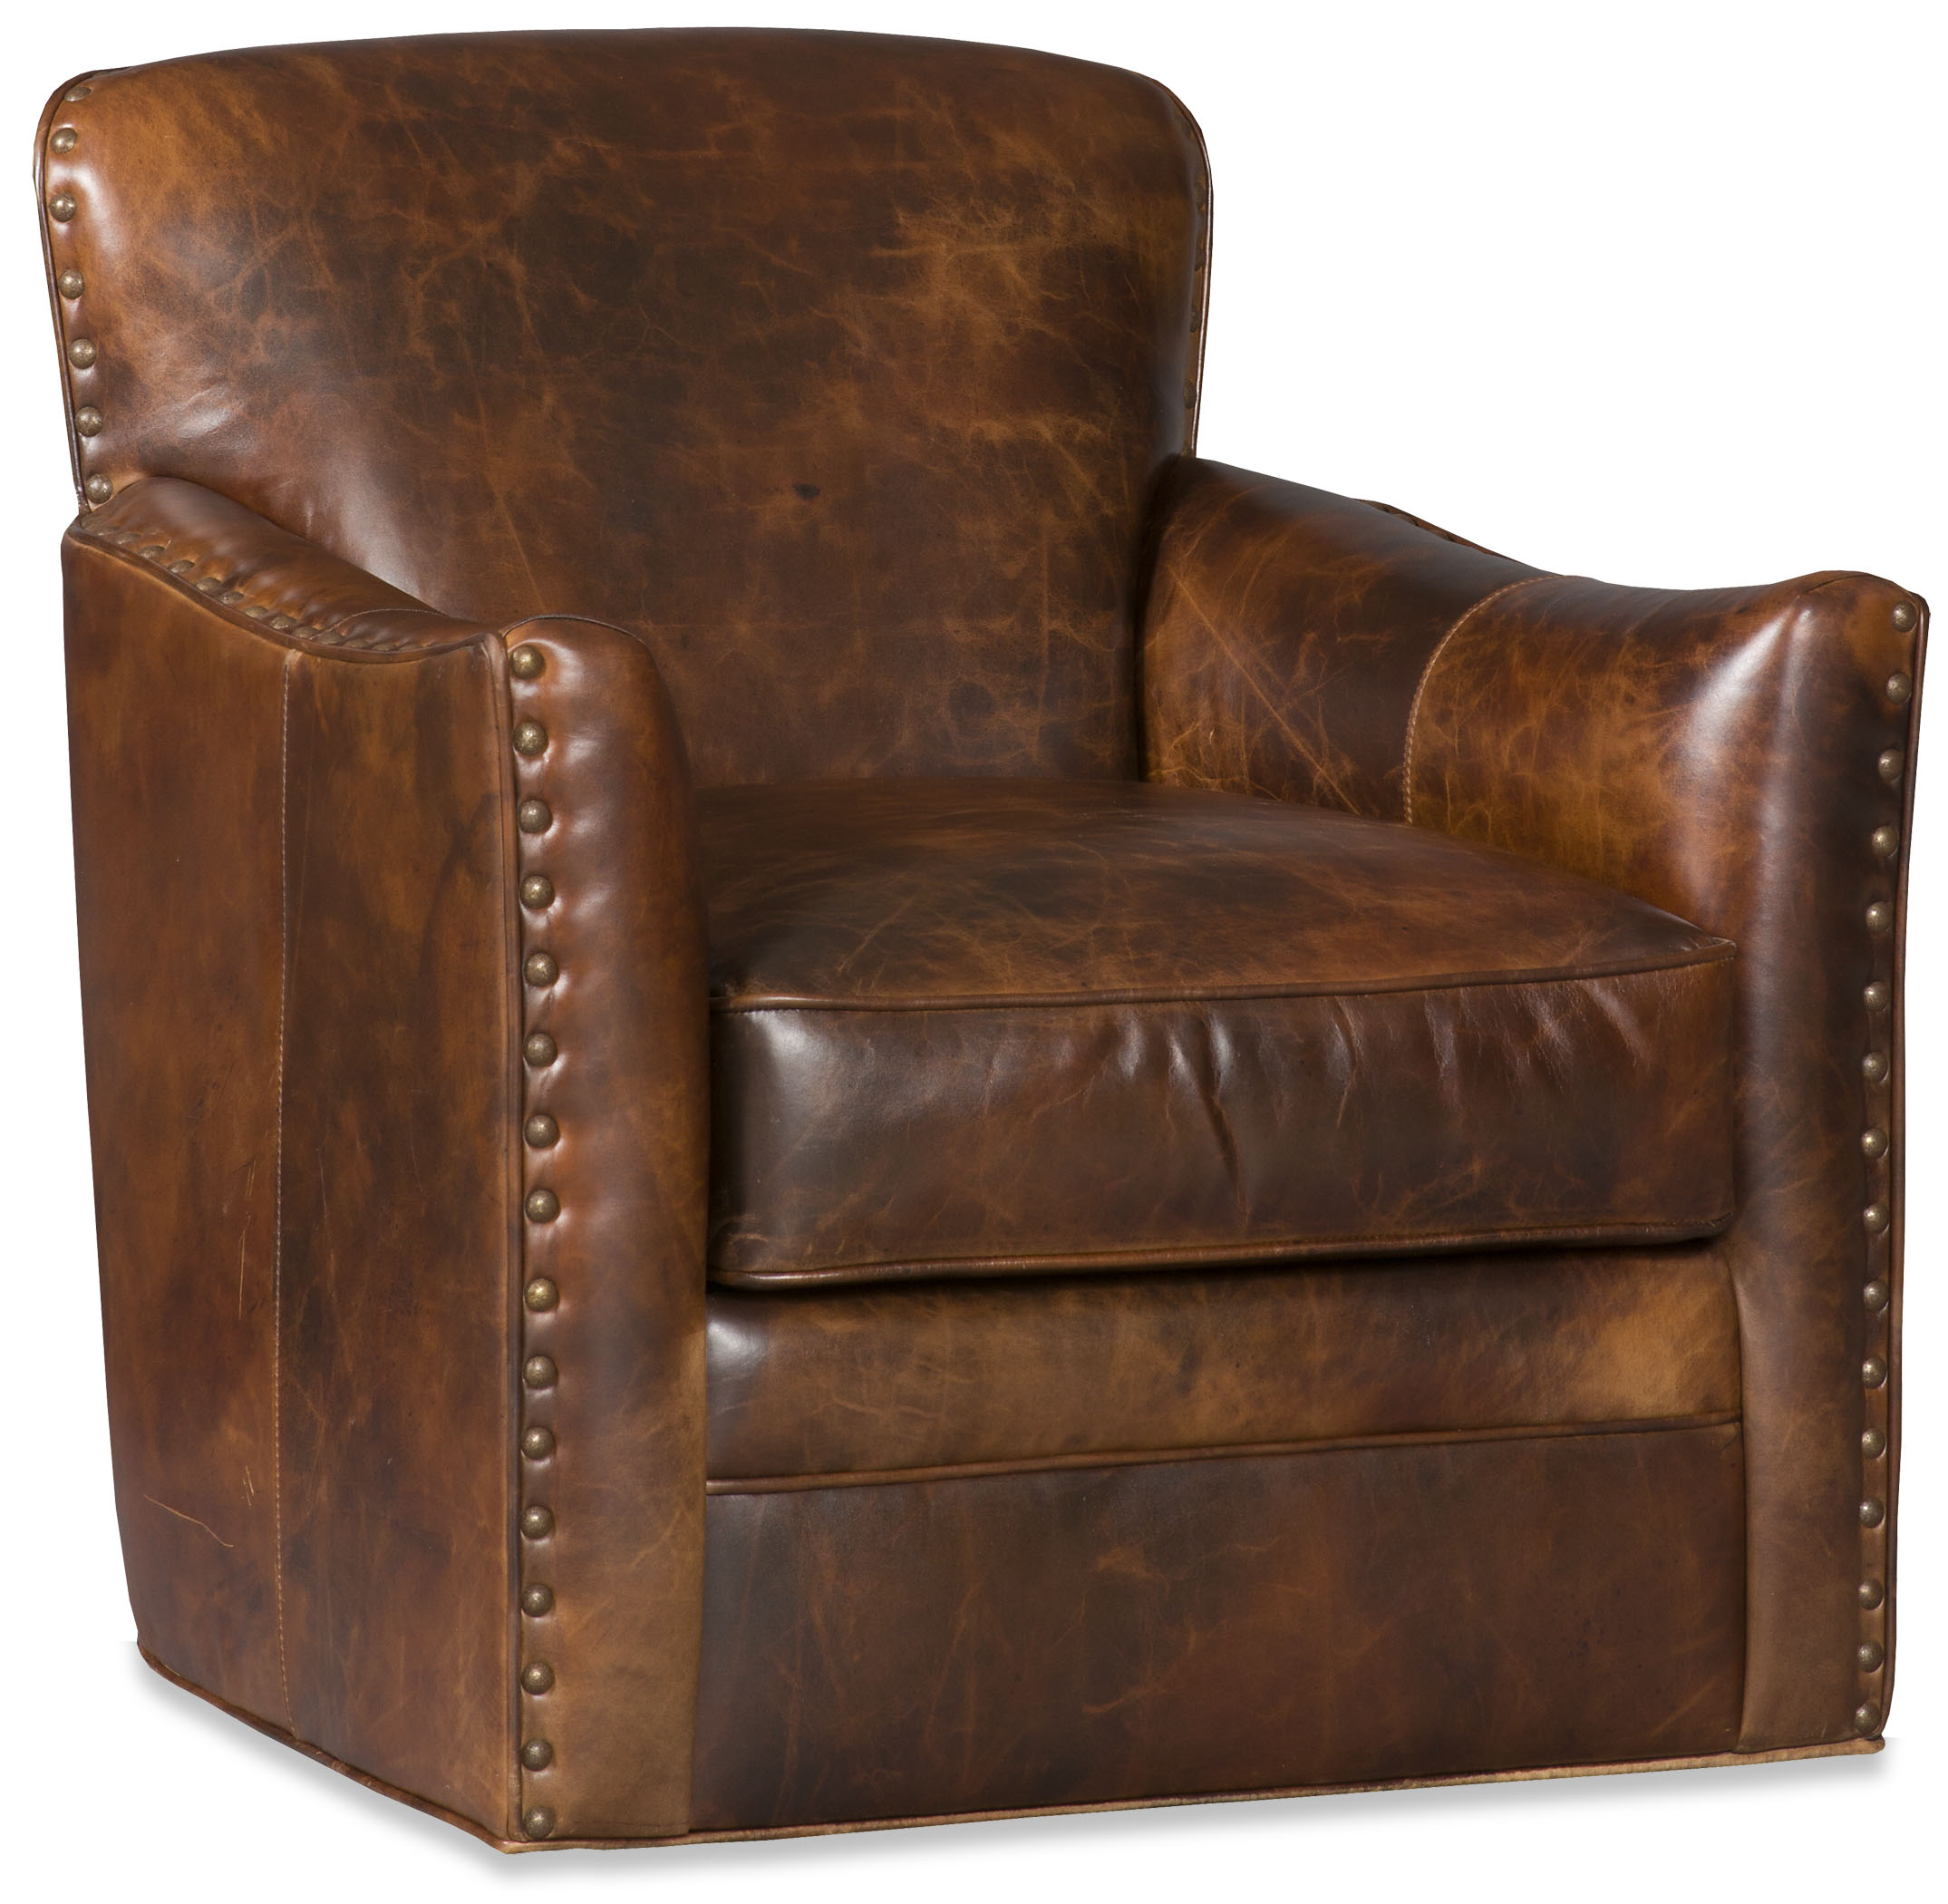 Luna Leather Swivel Chair